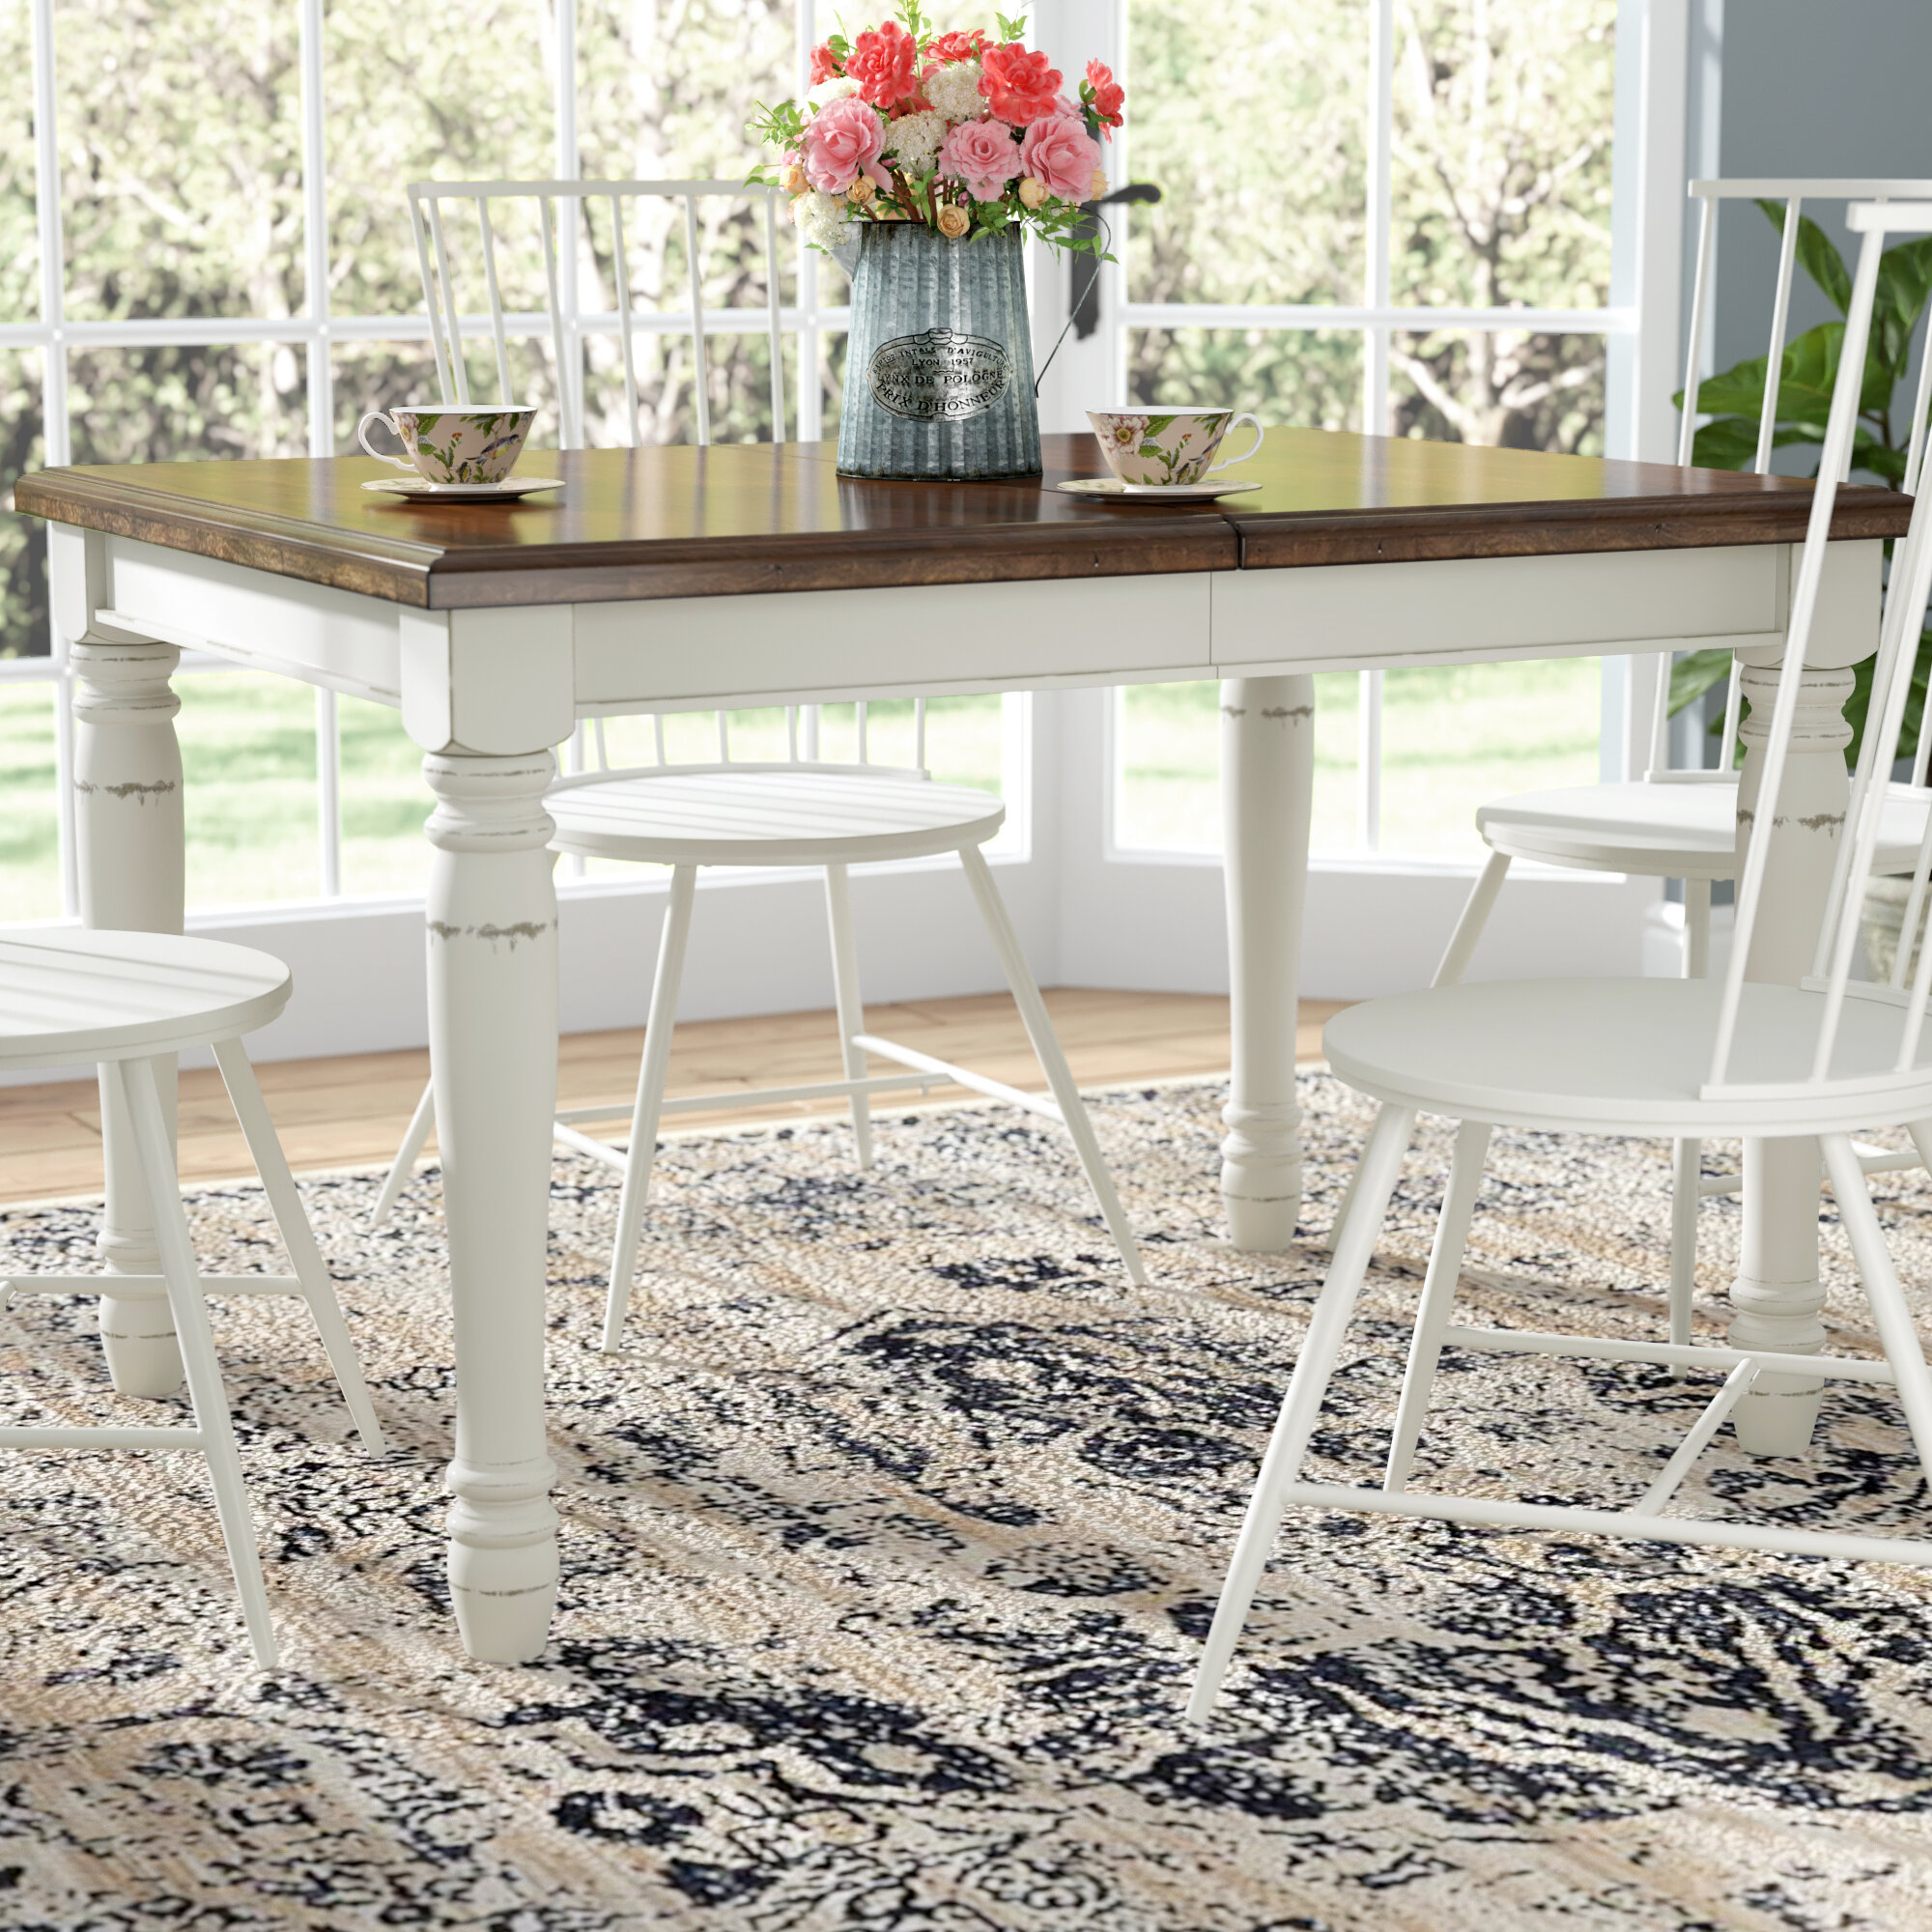 Laurel Foundry Modern Farmhouse Extendable Dining Table Reviews